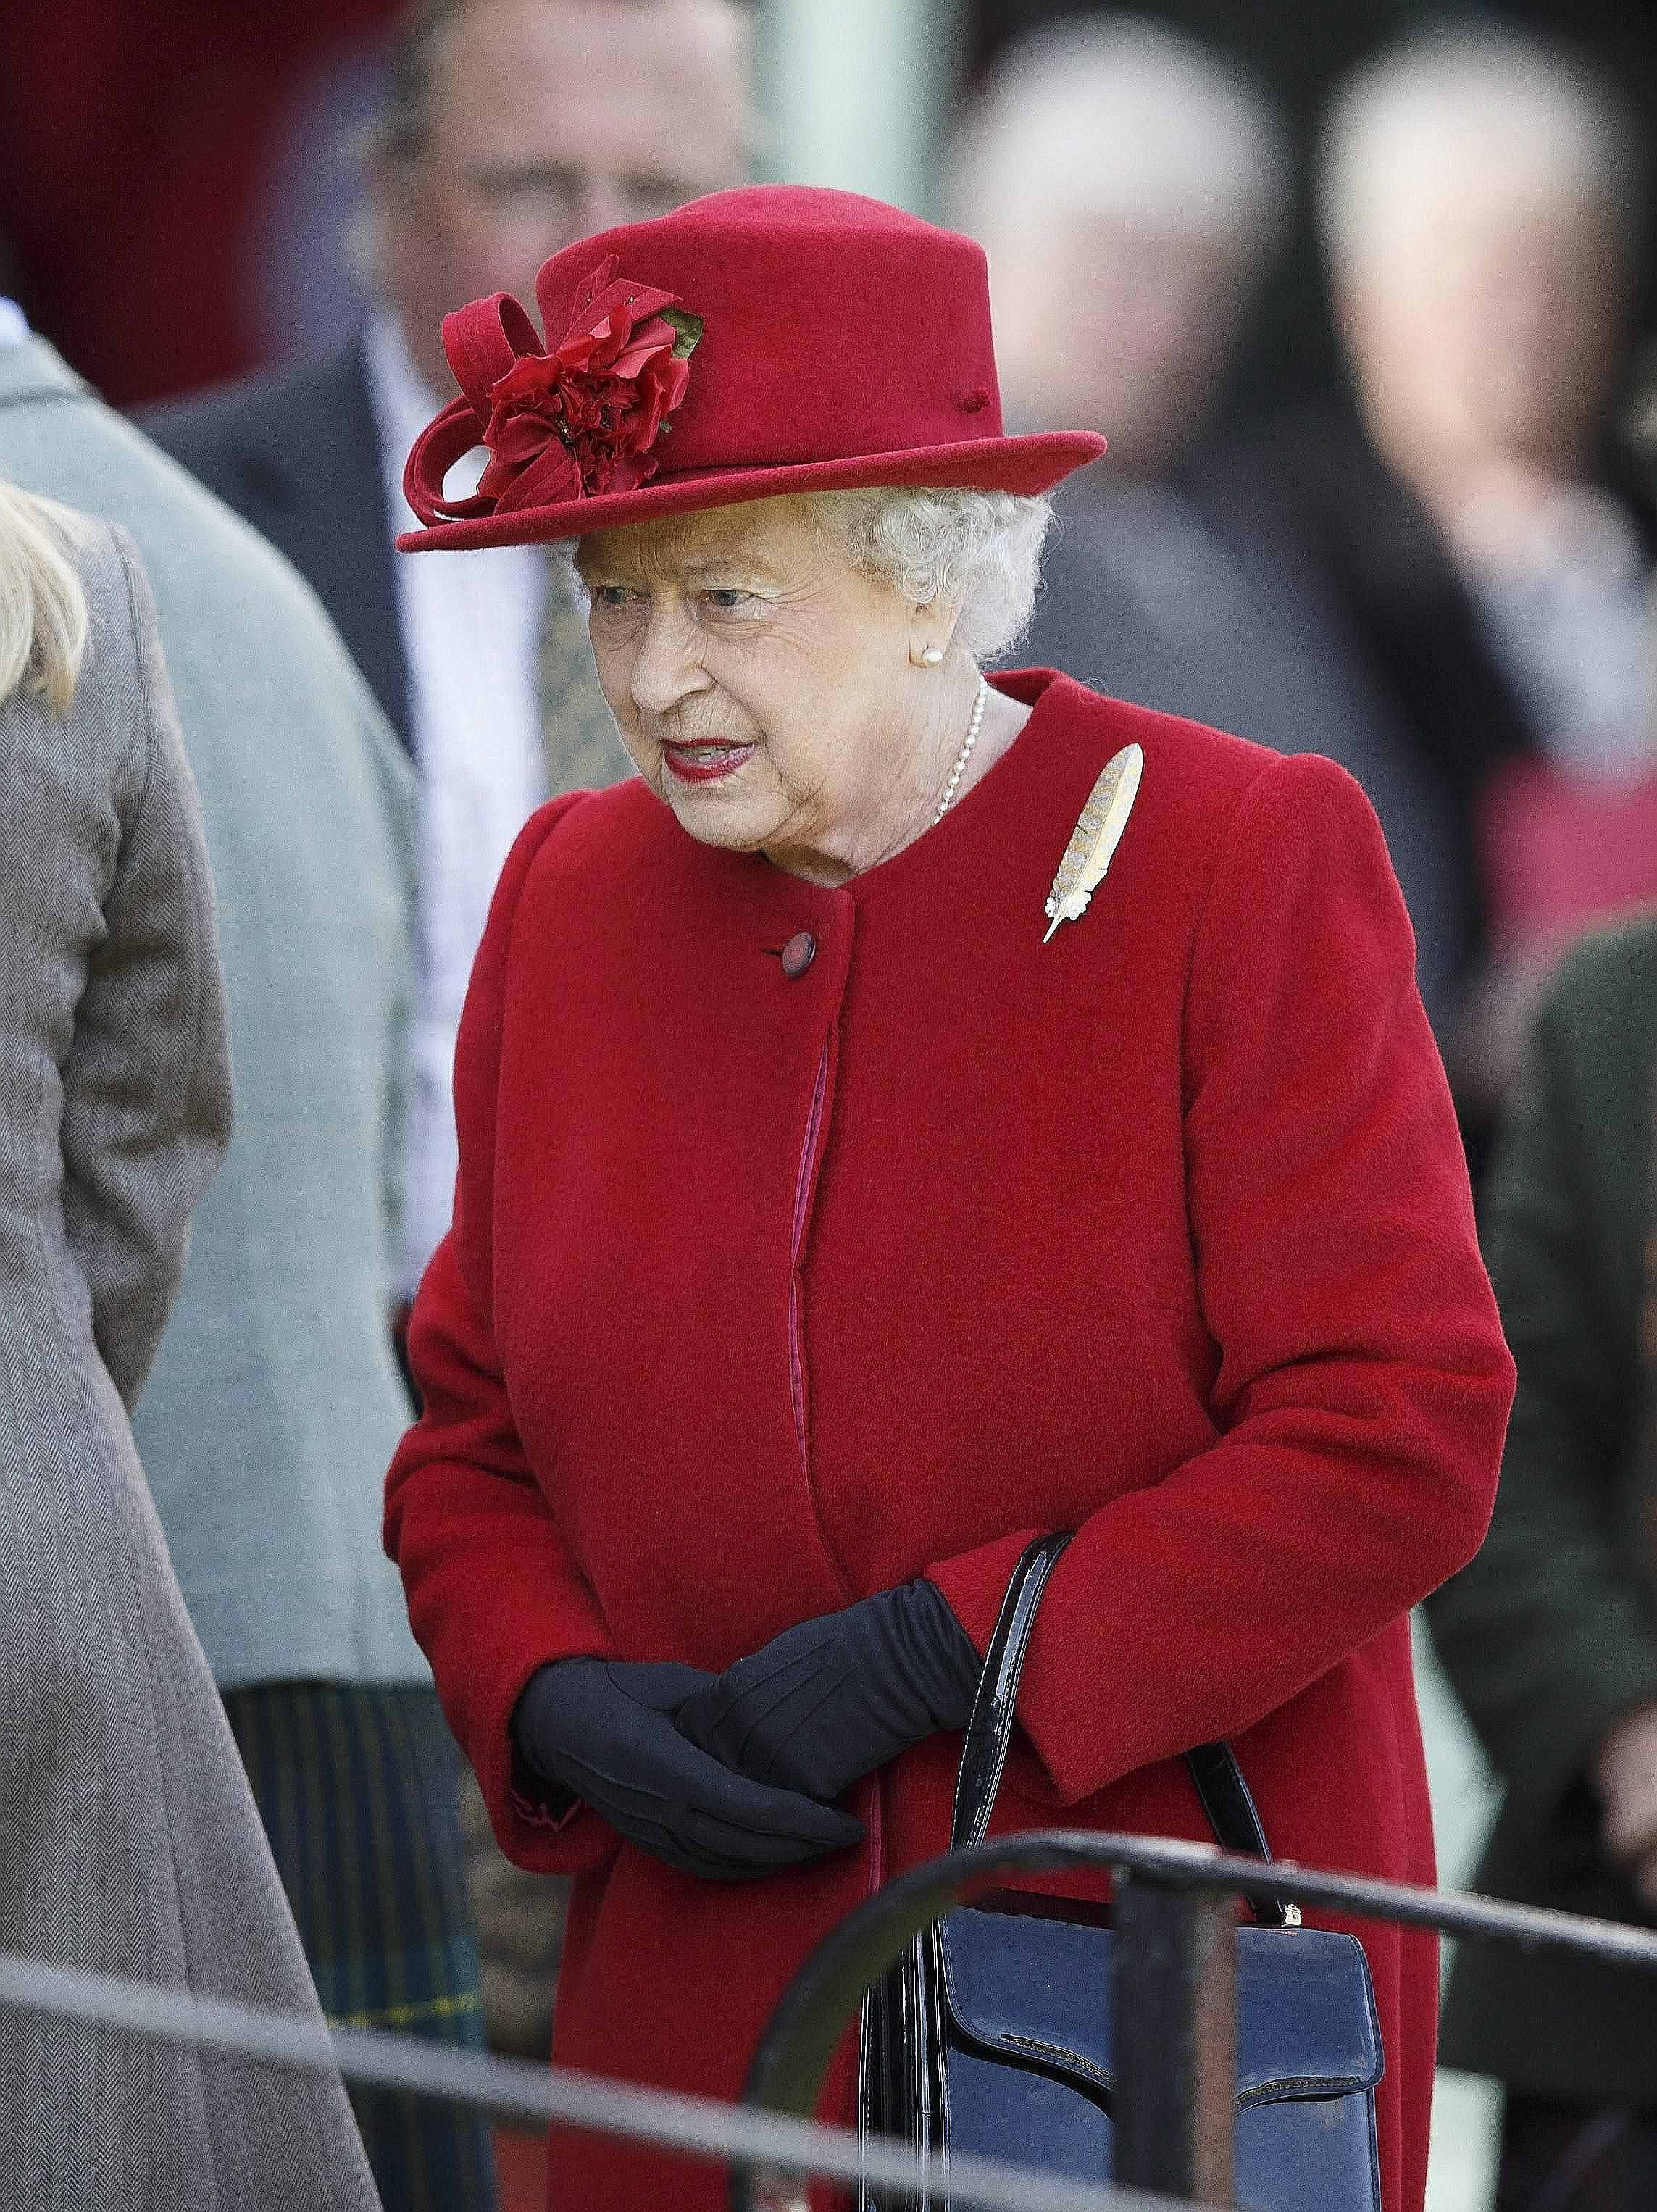 The British monarchy has changed significantly during Queen Elizabeth's reign, with reforms she helped oversee, such as ending the rule of male primogeniture on the throne.